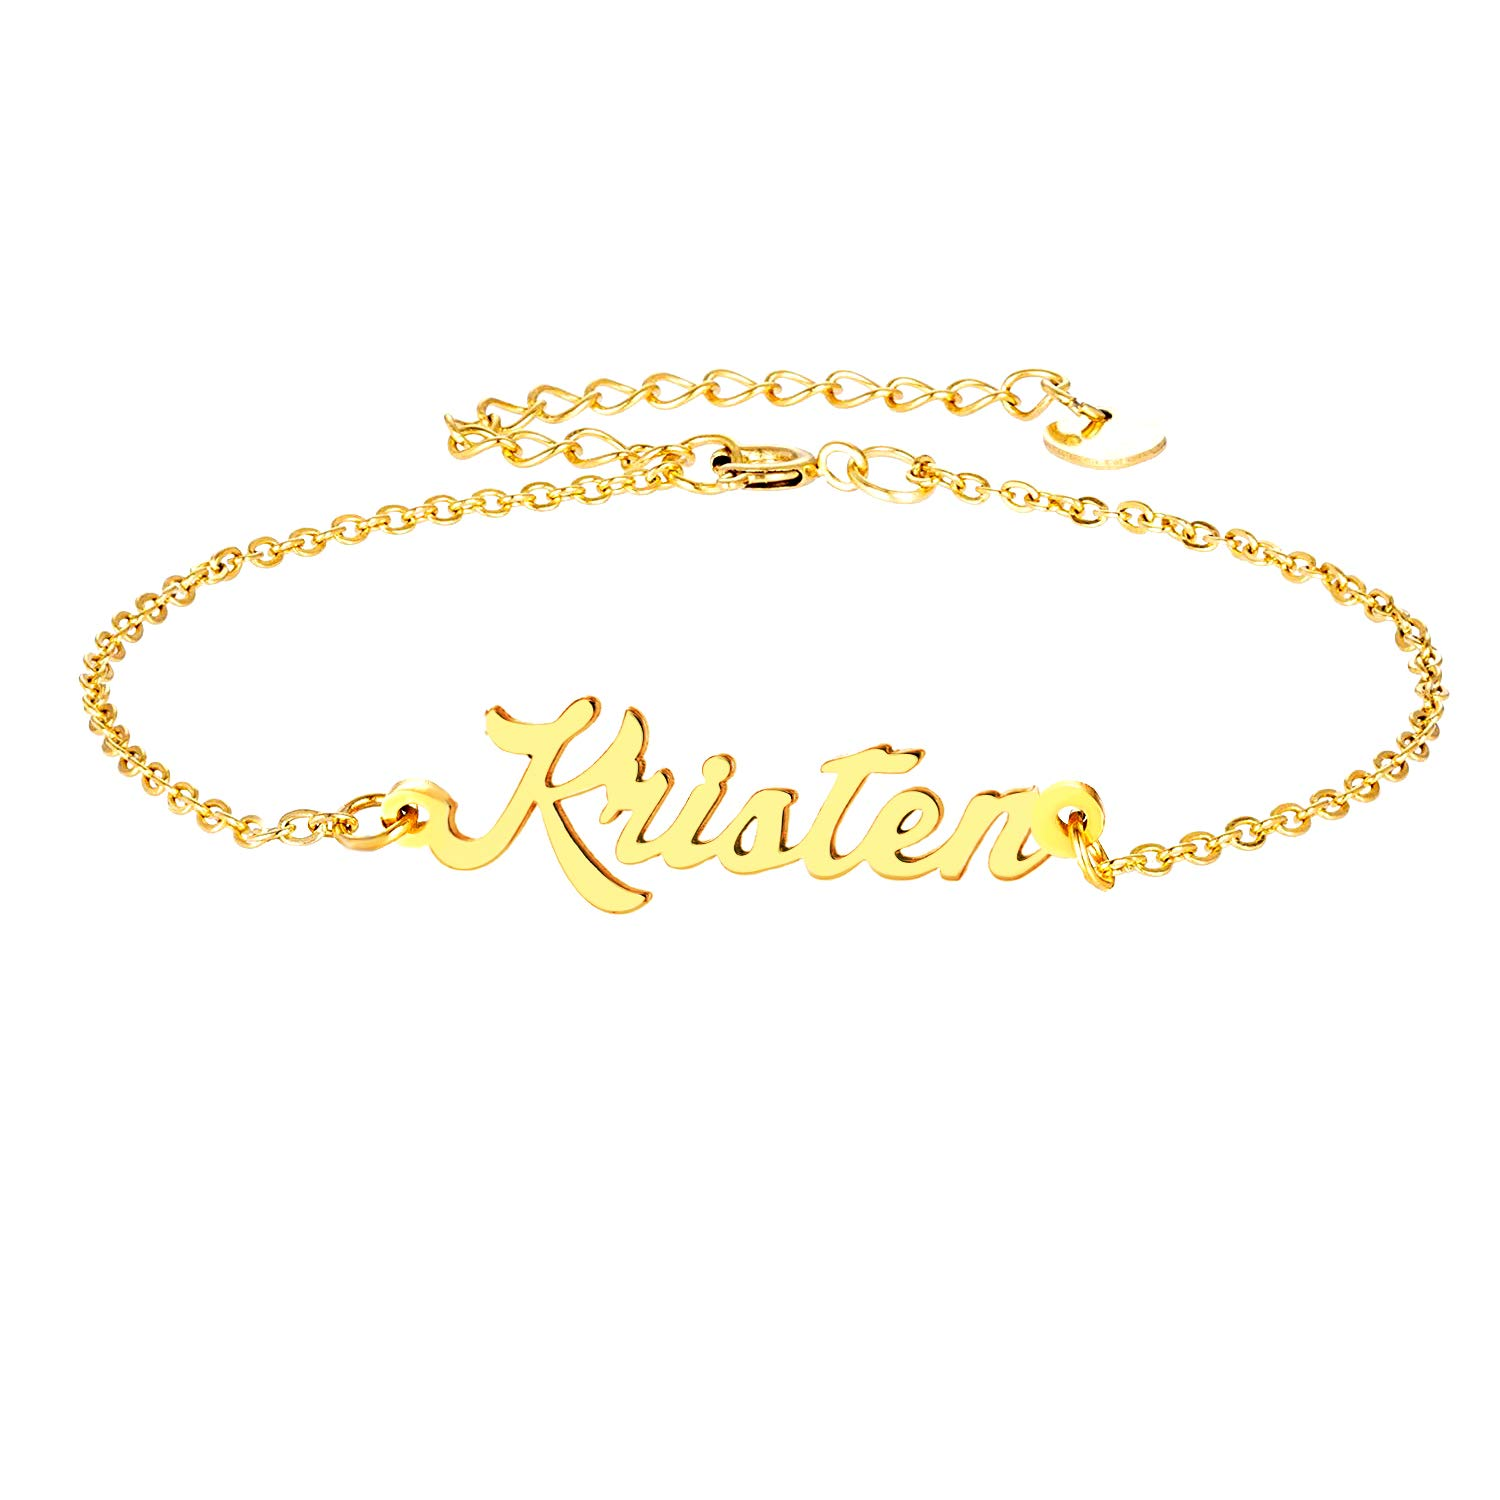 Name Plate Link Bracelet Anklet Custom Made Jewelry in Any Name Gift for Women Girls YINSHIFU Personalized Name Bracelet